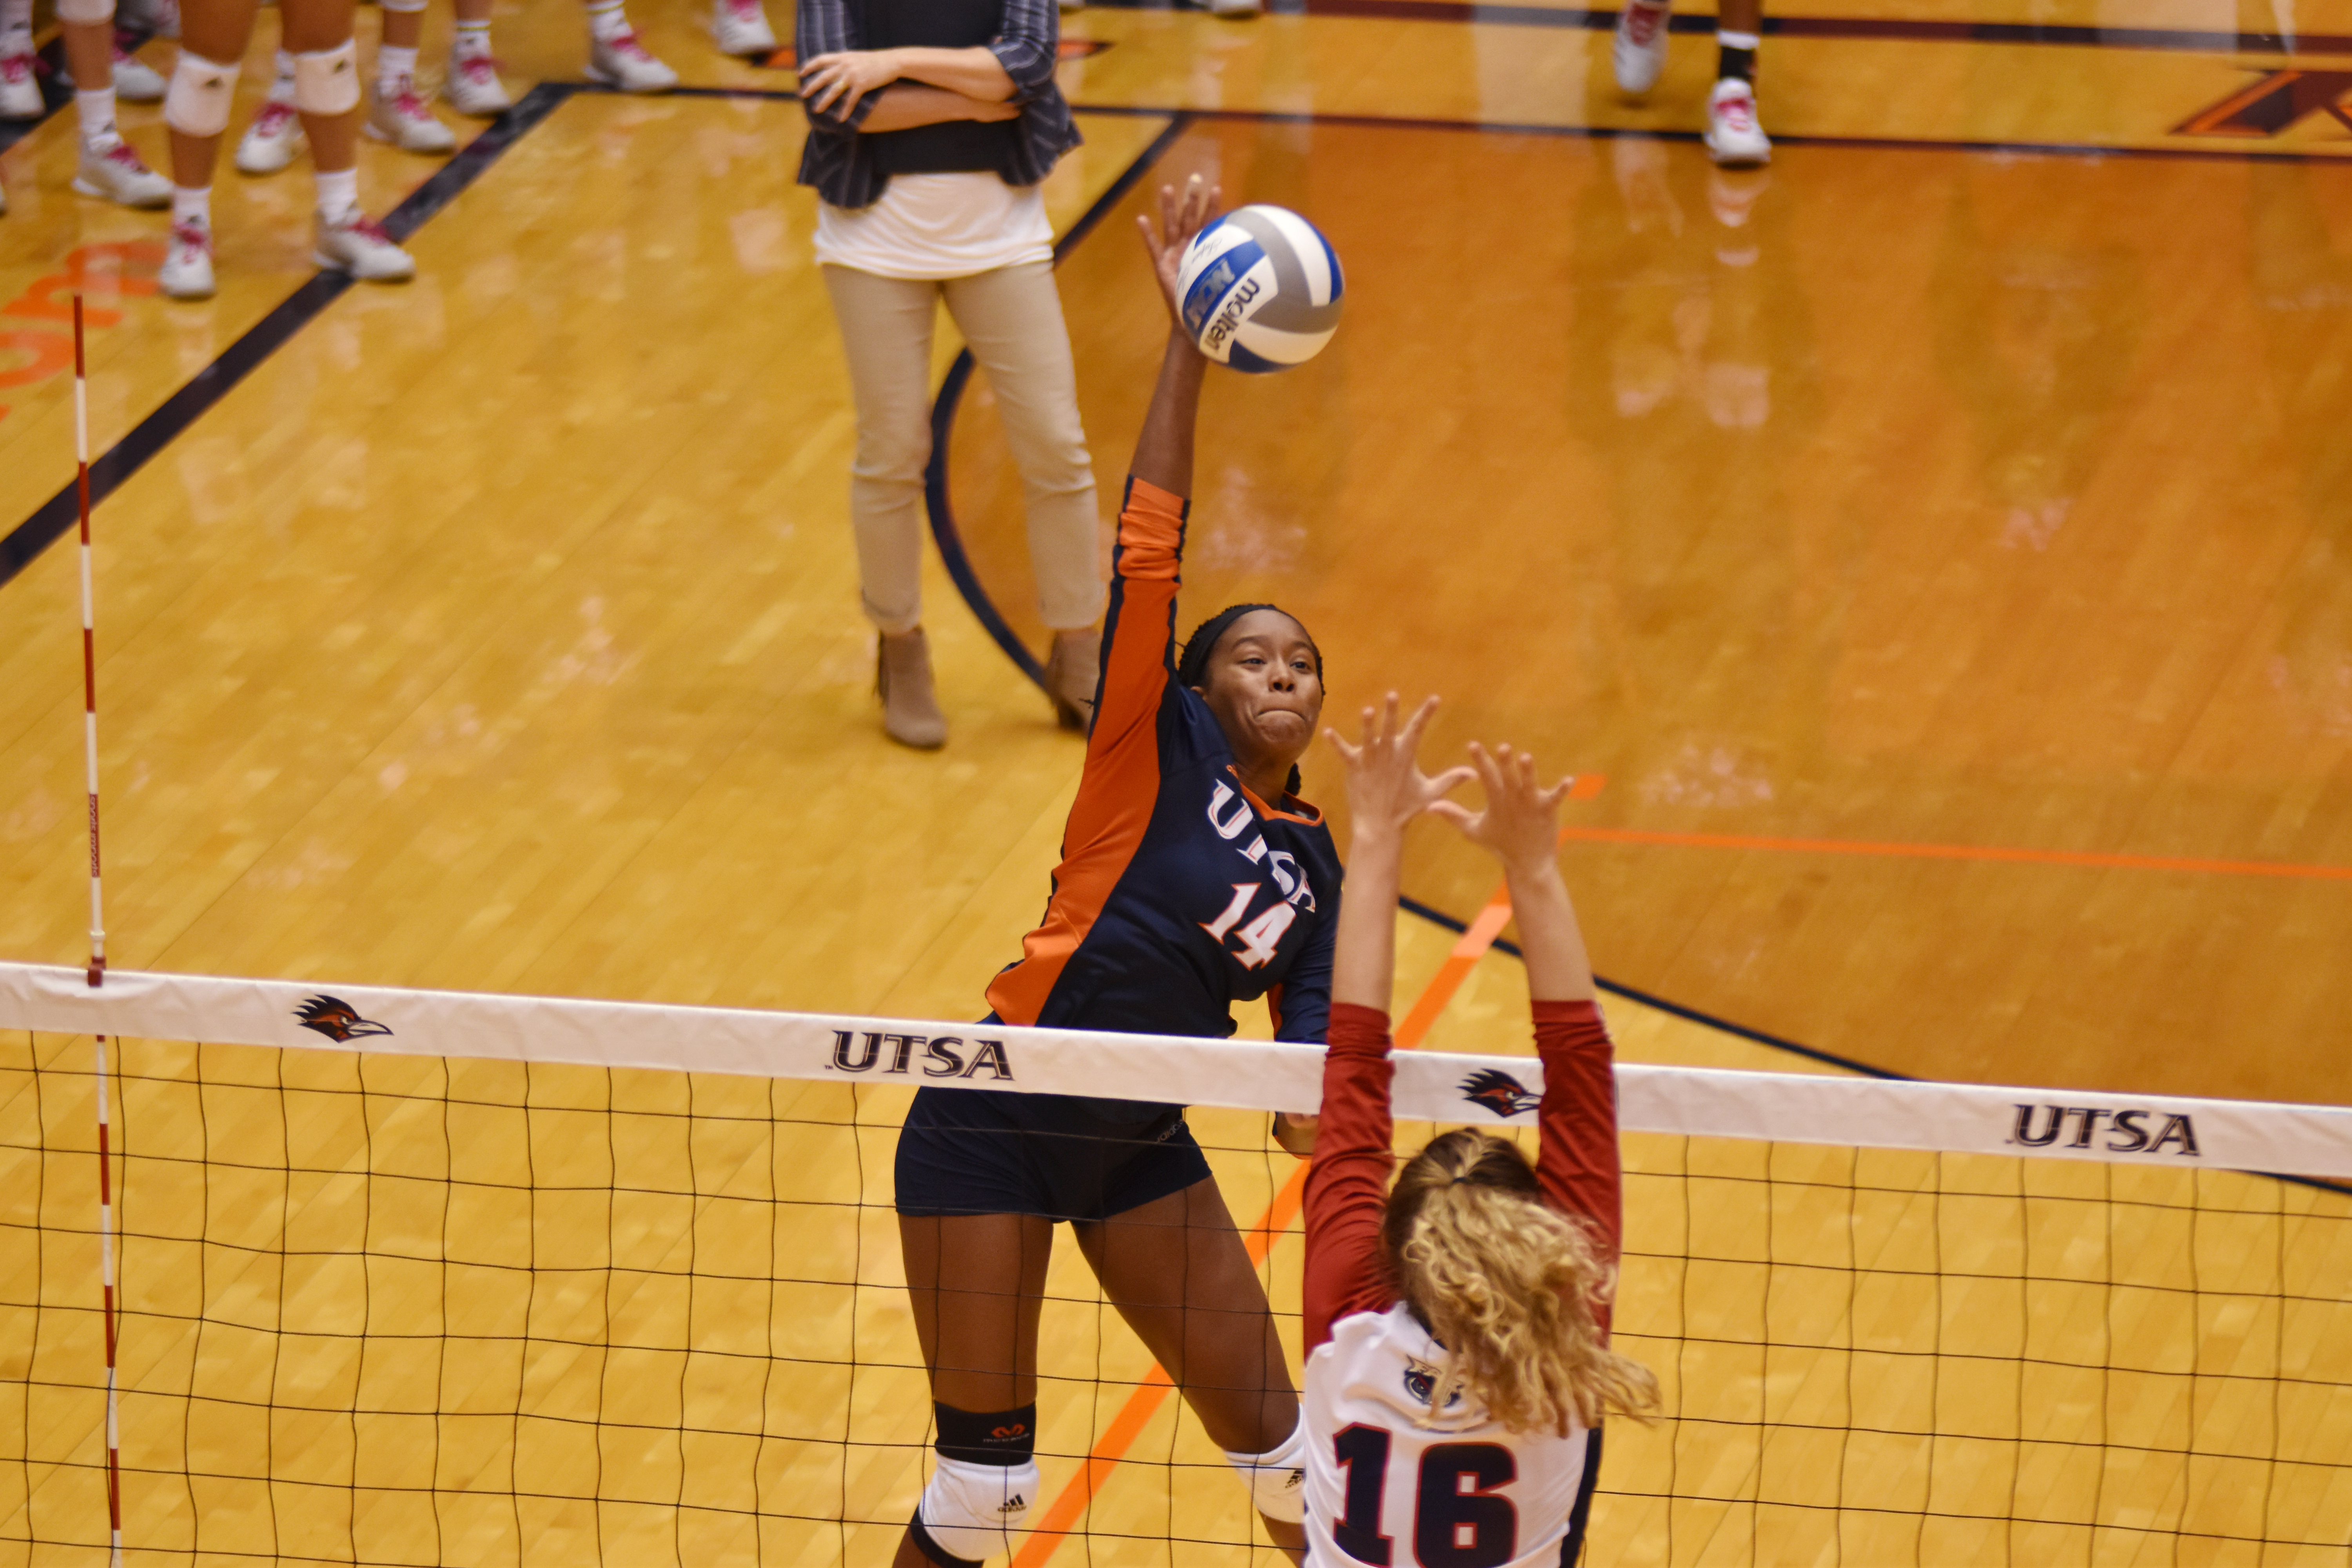 Brianna McCulloch spikes the ball over the net.